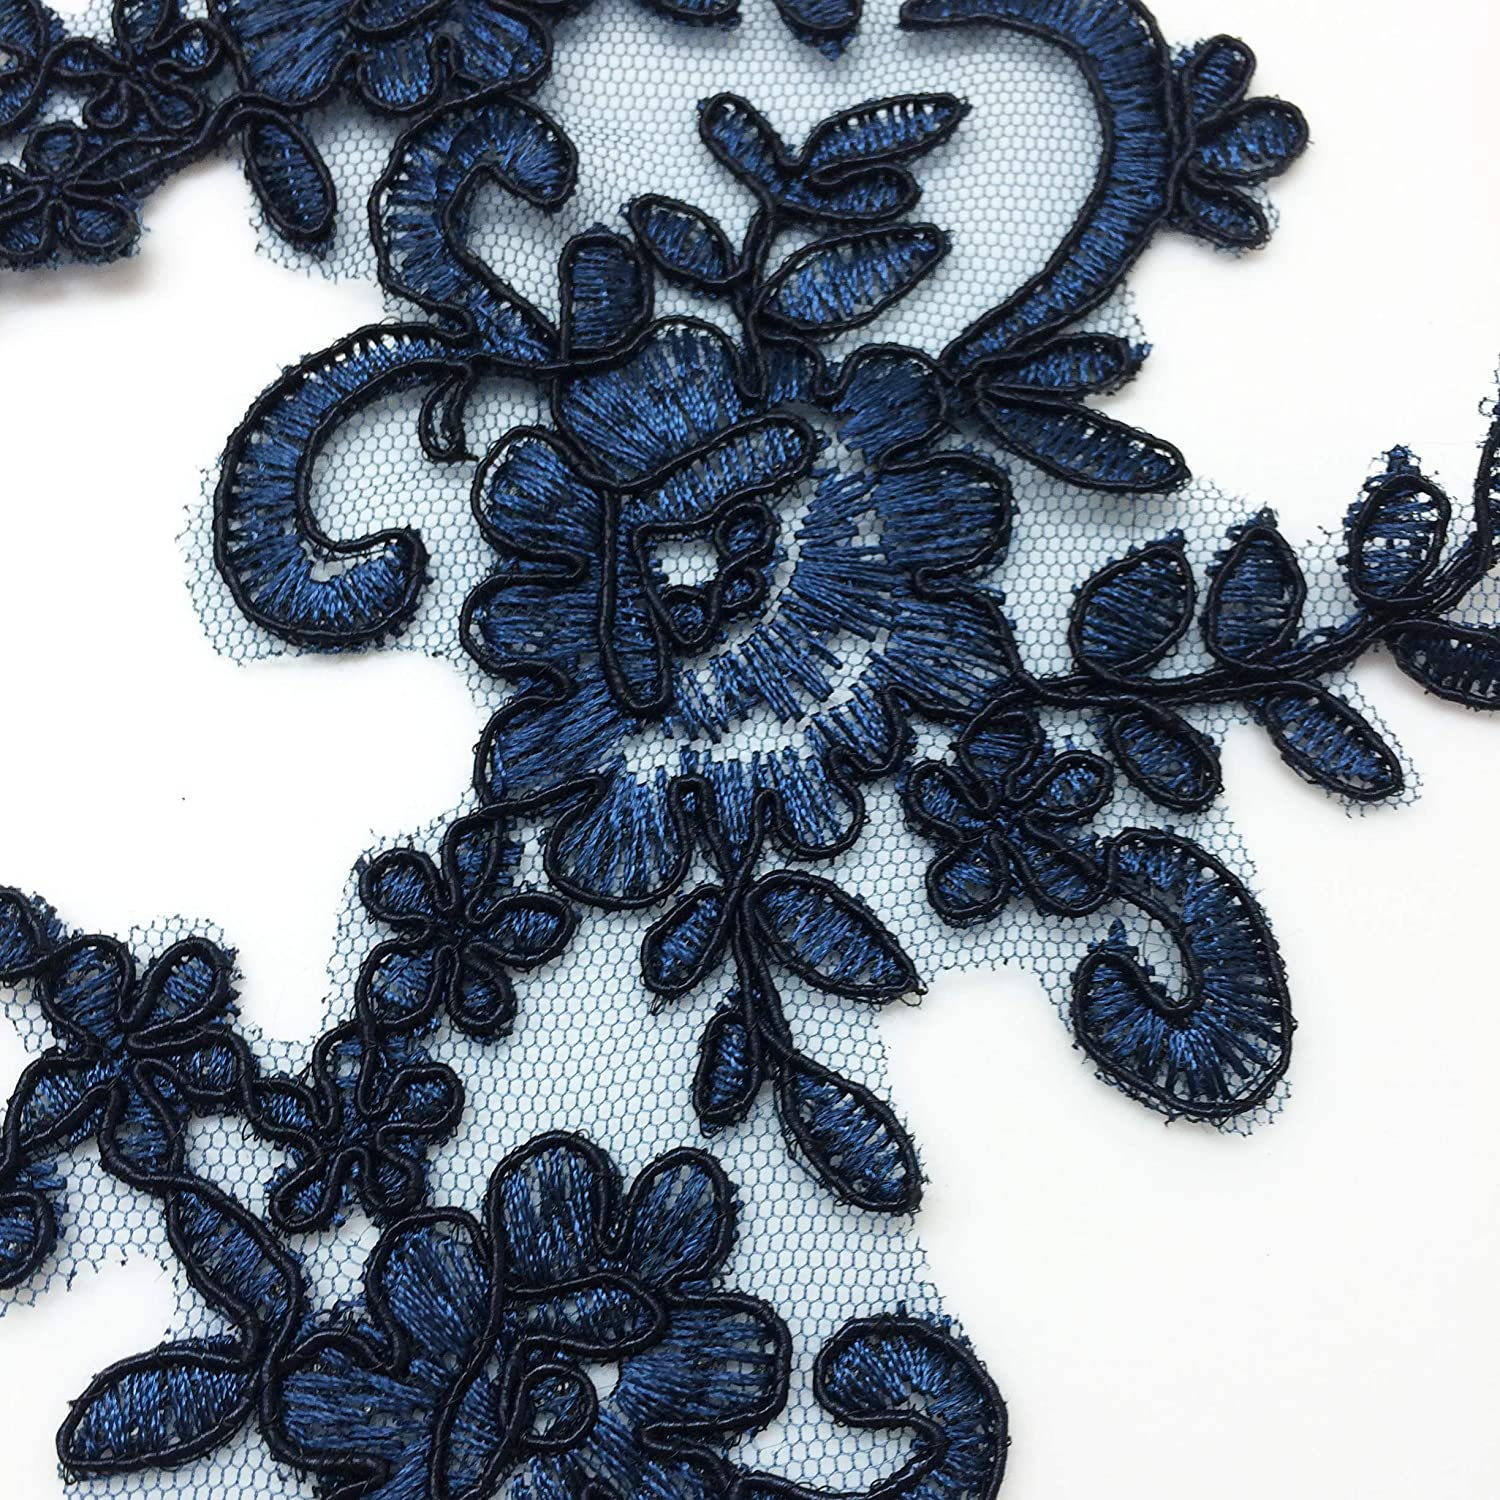 Navy 10 X 6 Inch PEPPERLONELY 1 Pair Fine Lace Fabric Patches Embroidered Trim Applique Decor Dress Decoration